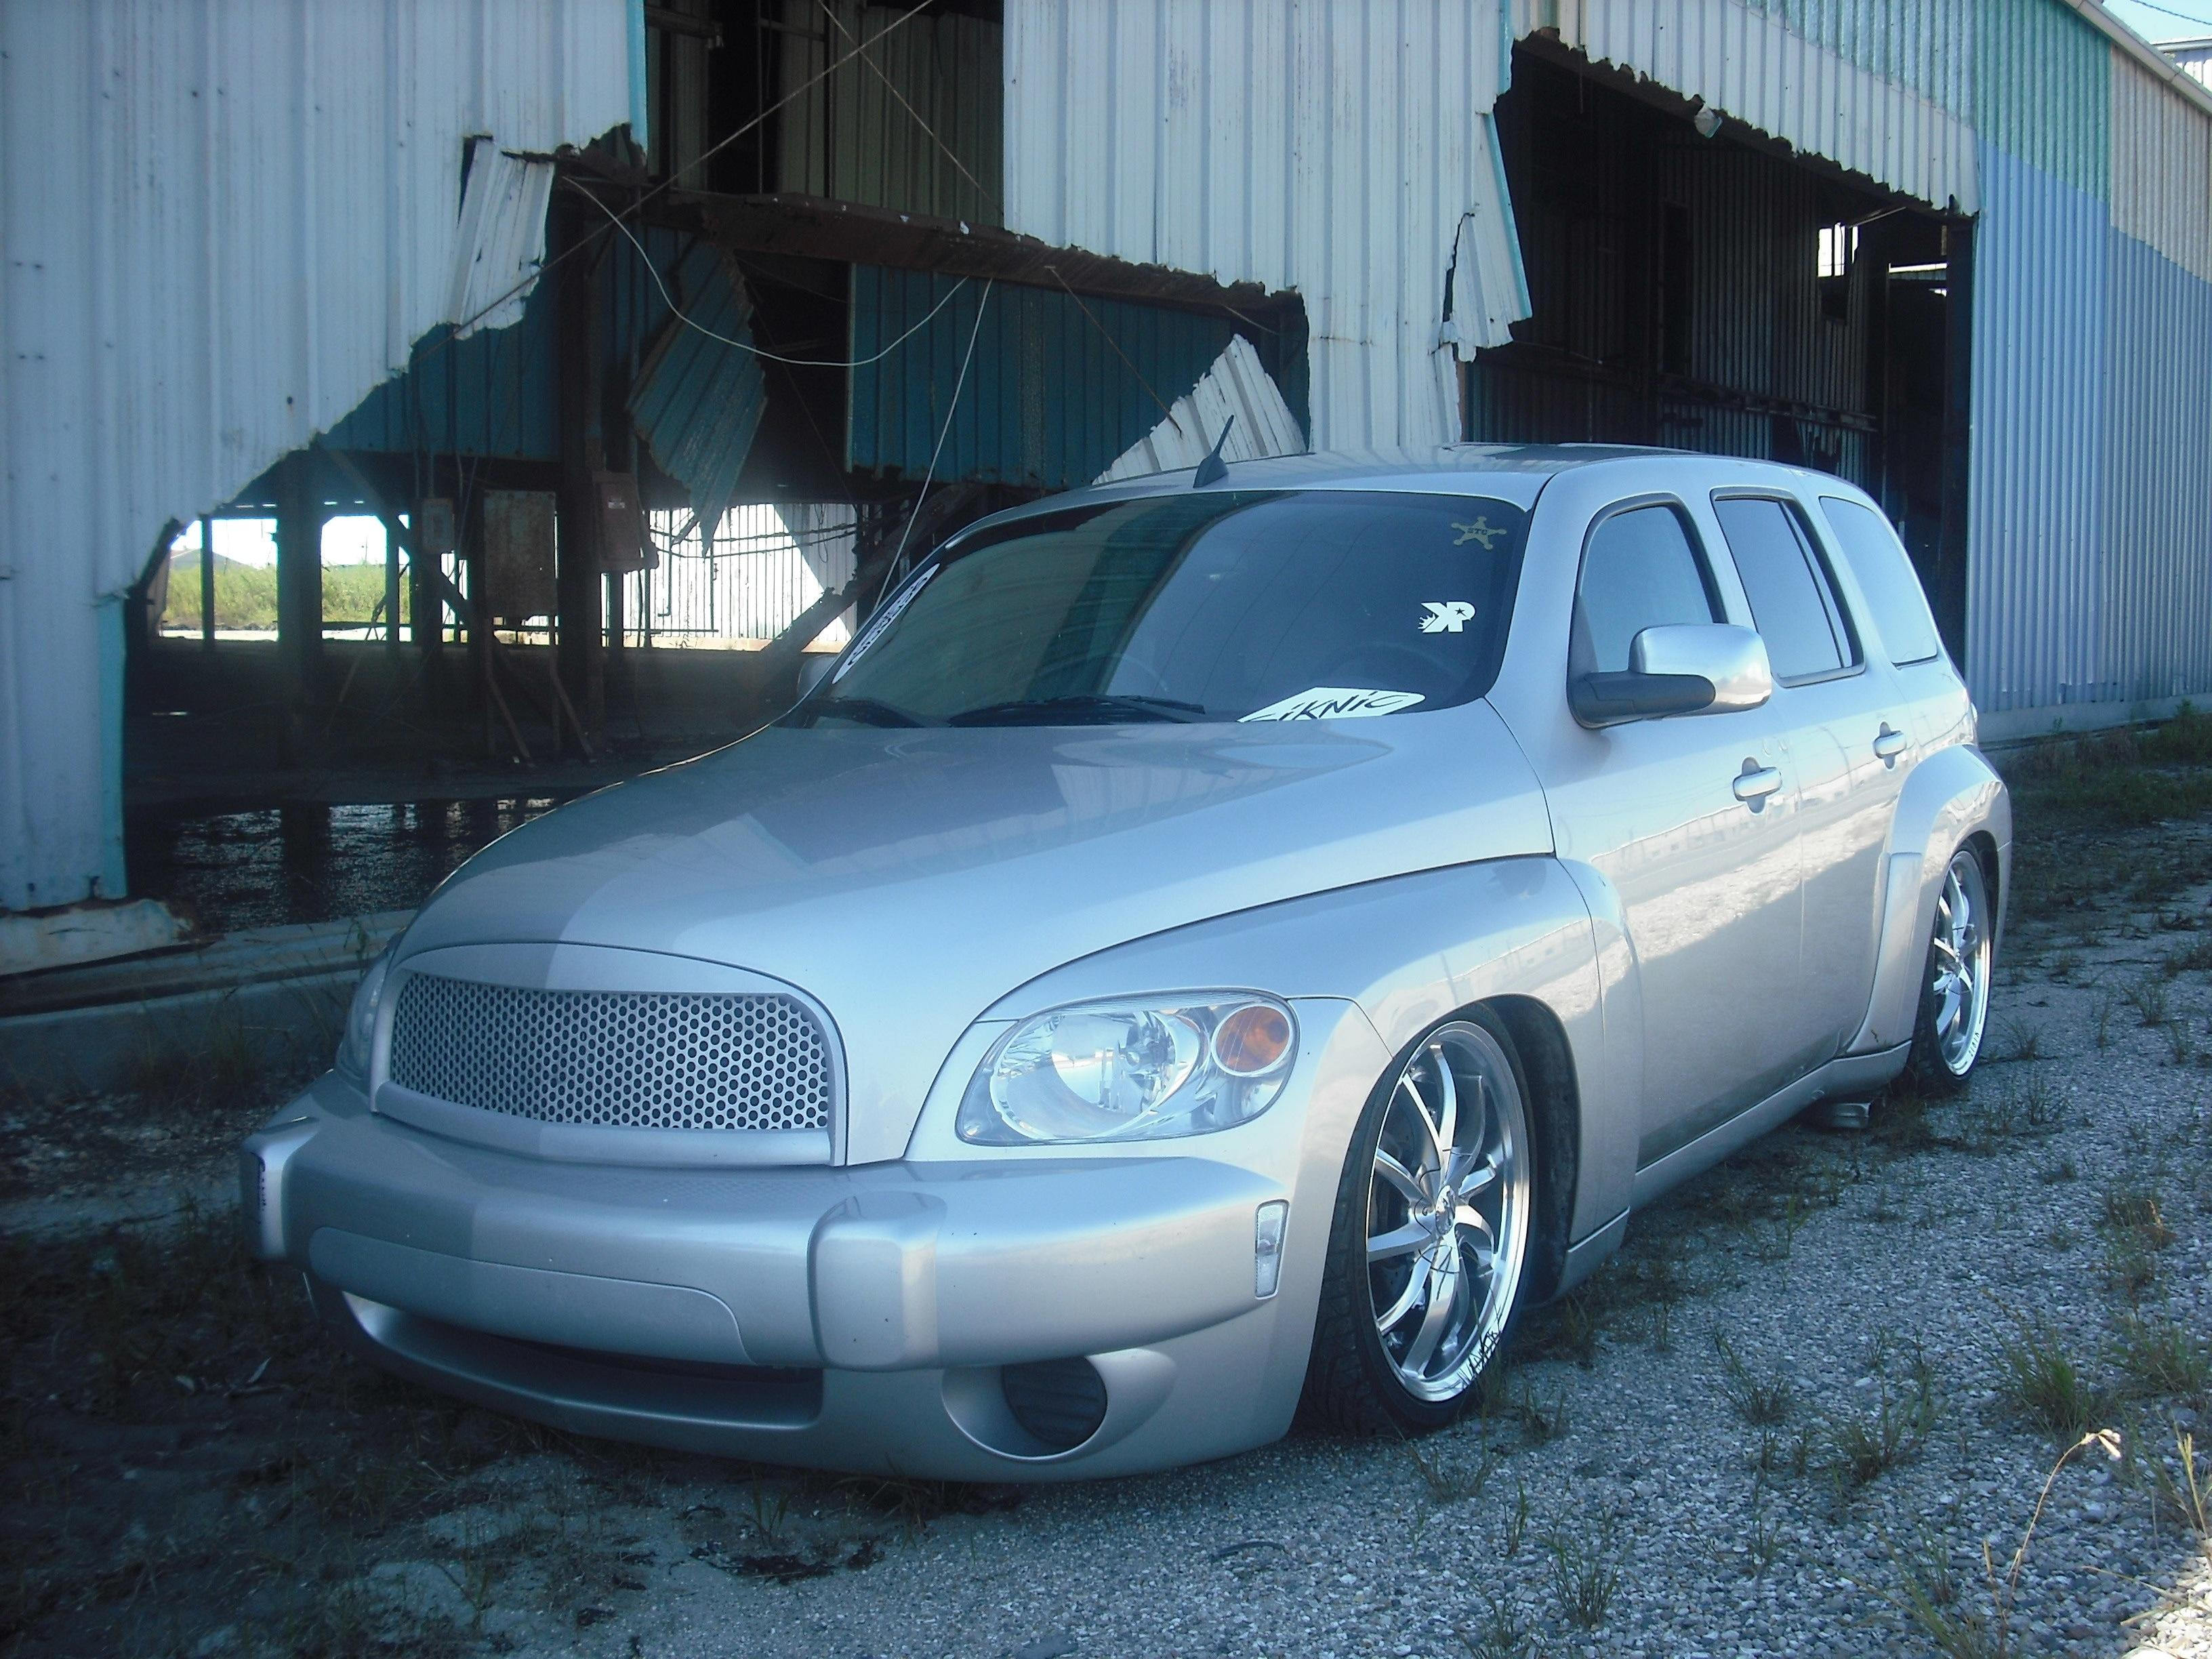 Another lunchbox_mafioso 2006 Chevrolet HHR post... - 12750777